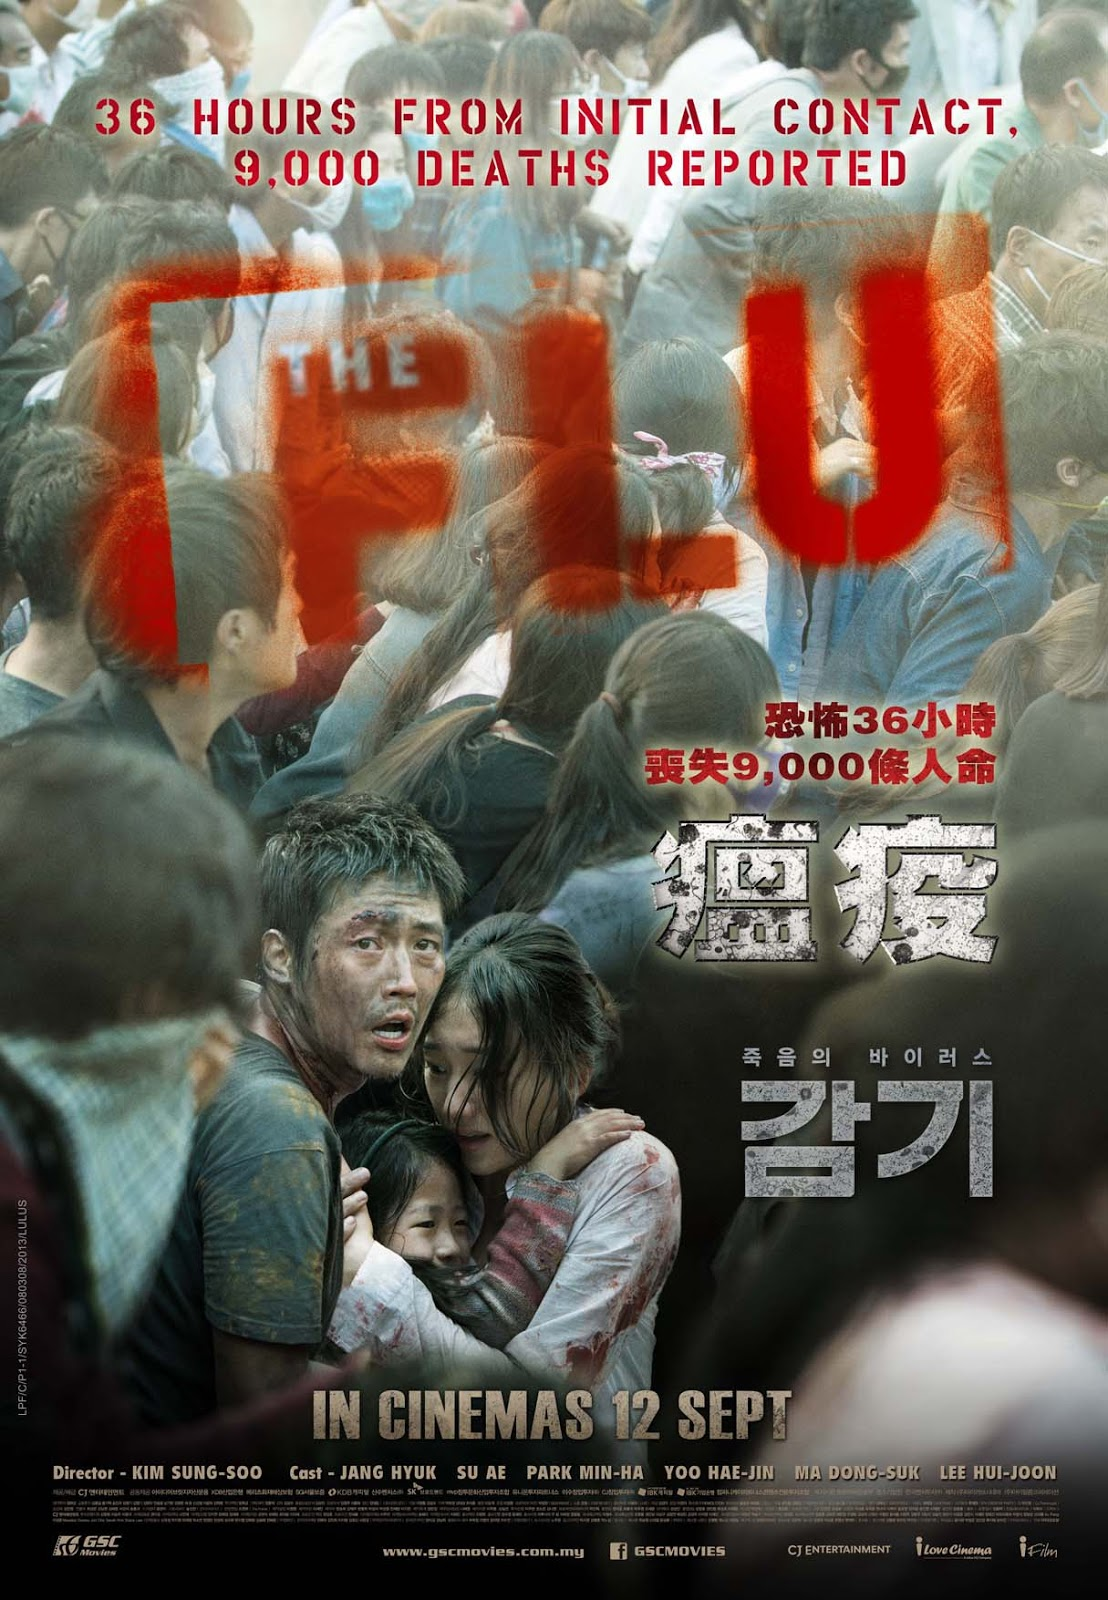 Flu [2013] Full Movie Watch Online Free Download